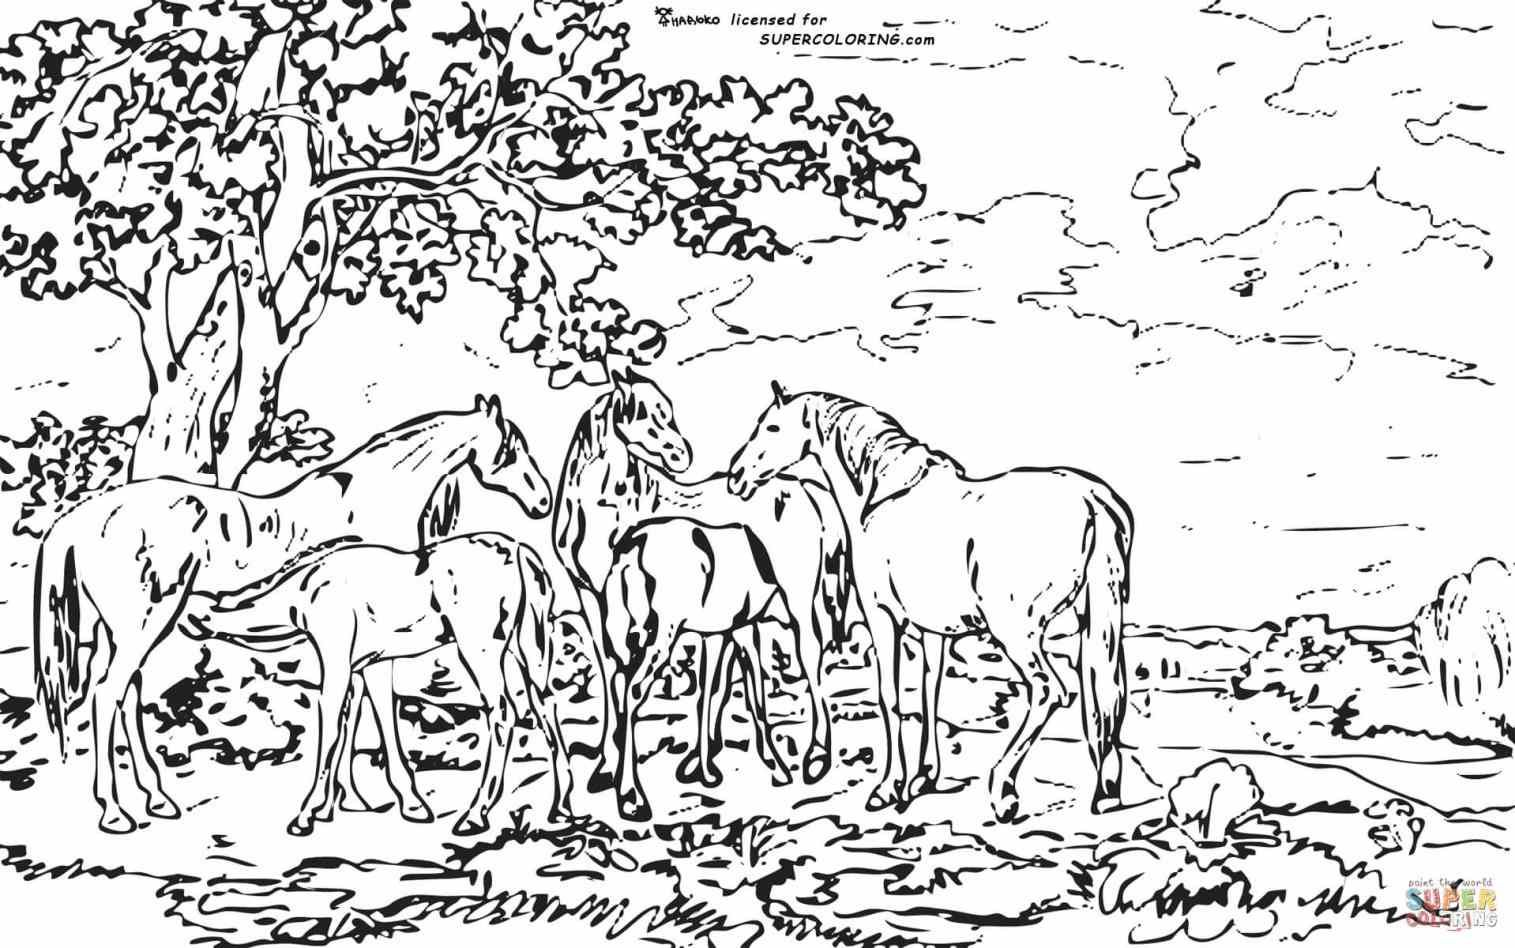 detailed landscape coloring pages for adults | Detailed Landscape Coloring Pages For Adults - Part 5